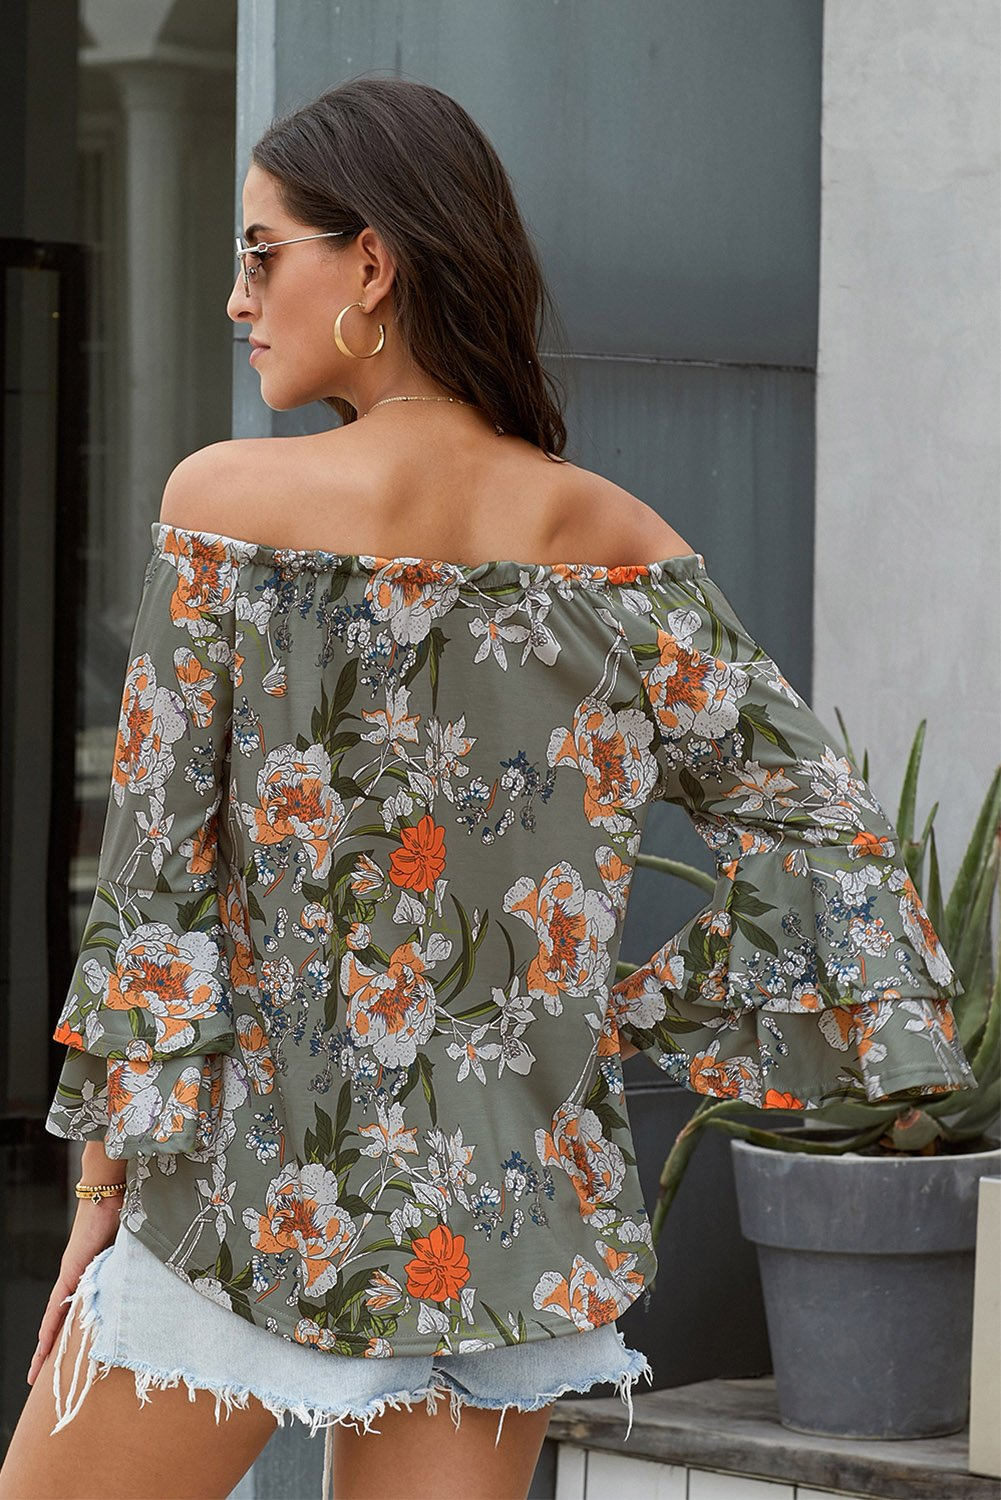 Gray Elasticised Neck Floral Print Blouse-Tops, Blouses & Shirts-Azura Exchange